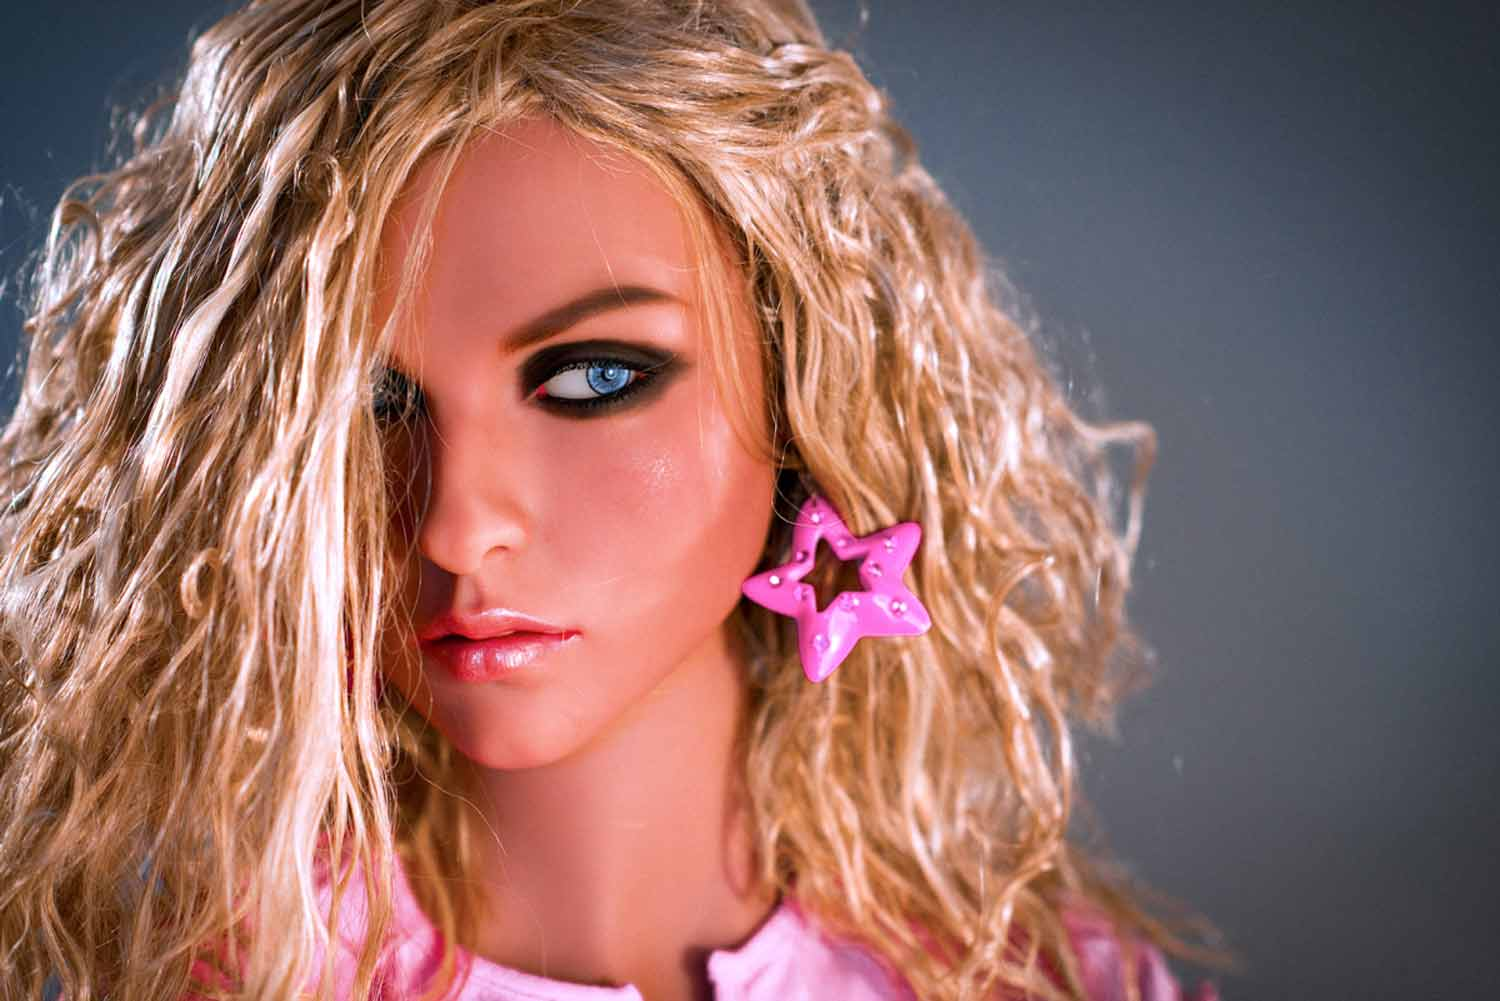 Sex doll with pink star earrings